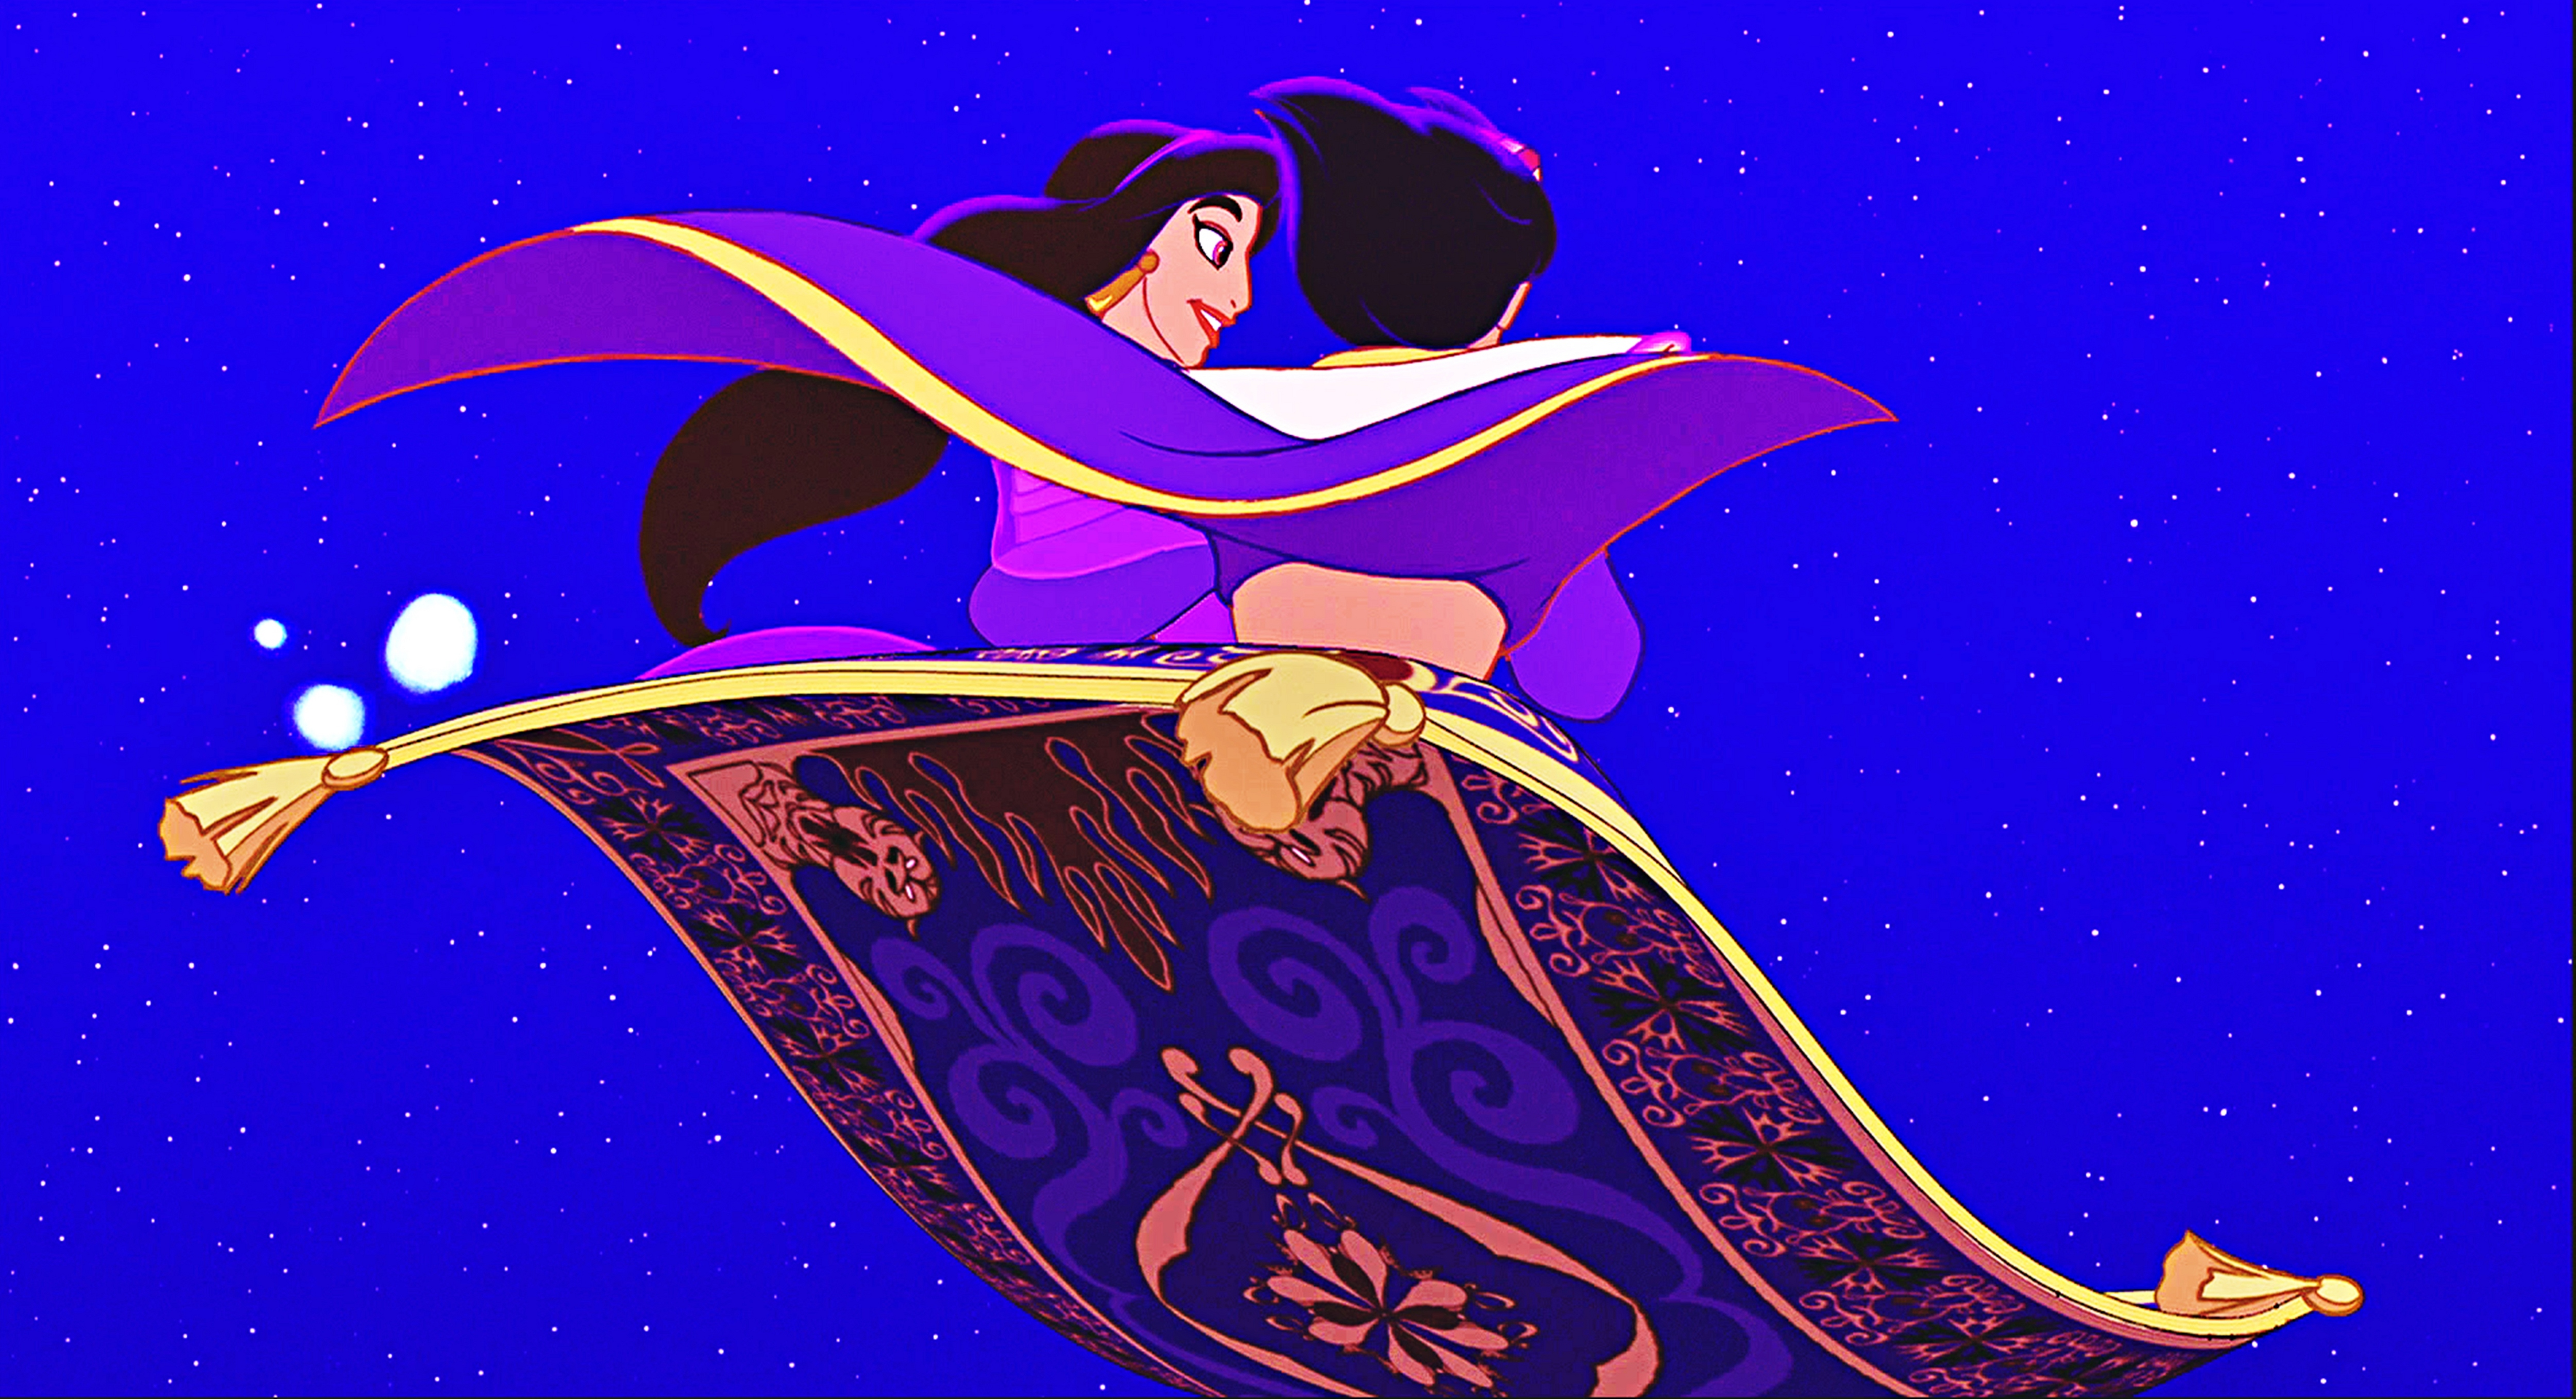 Walt disney characters images icons wallpapers and for Aladdin and jasmine on carpet wallpaper